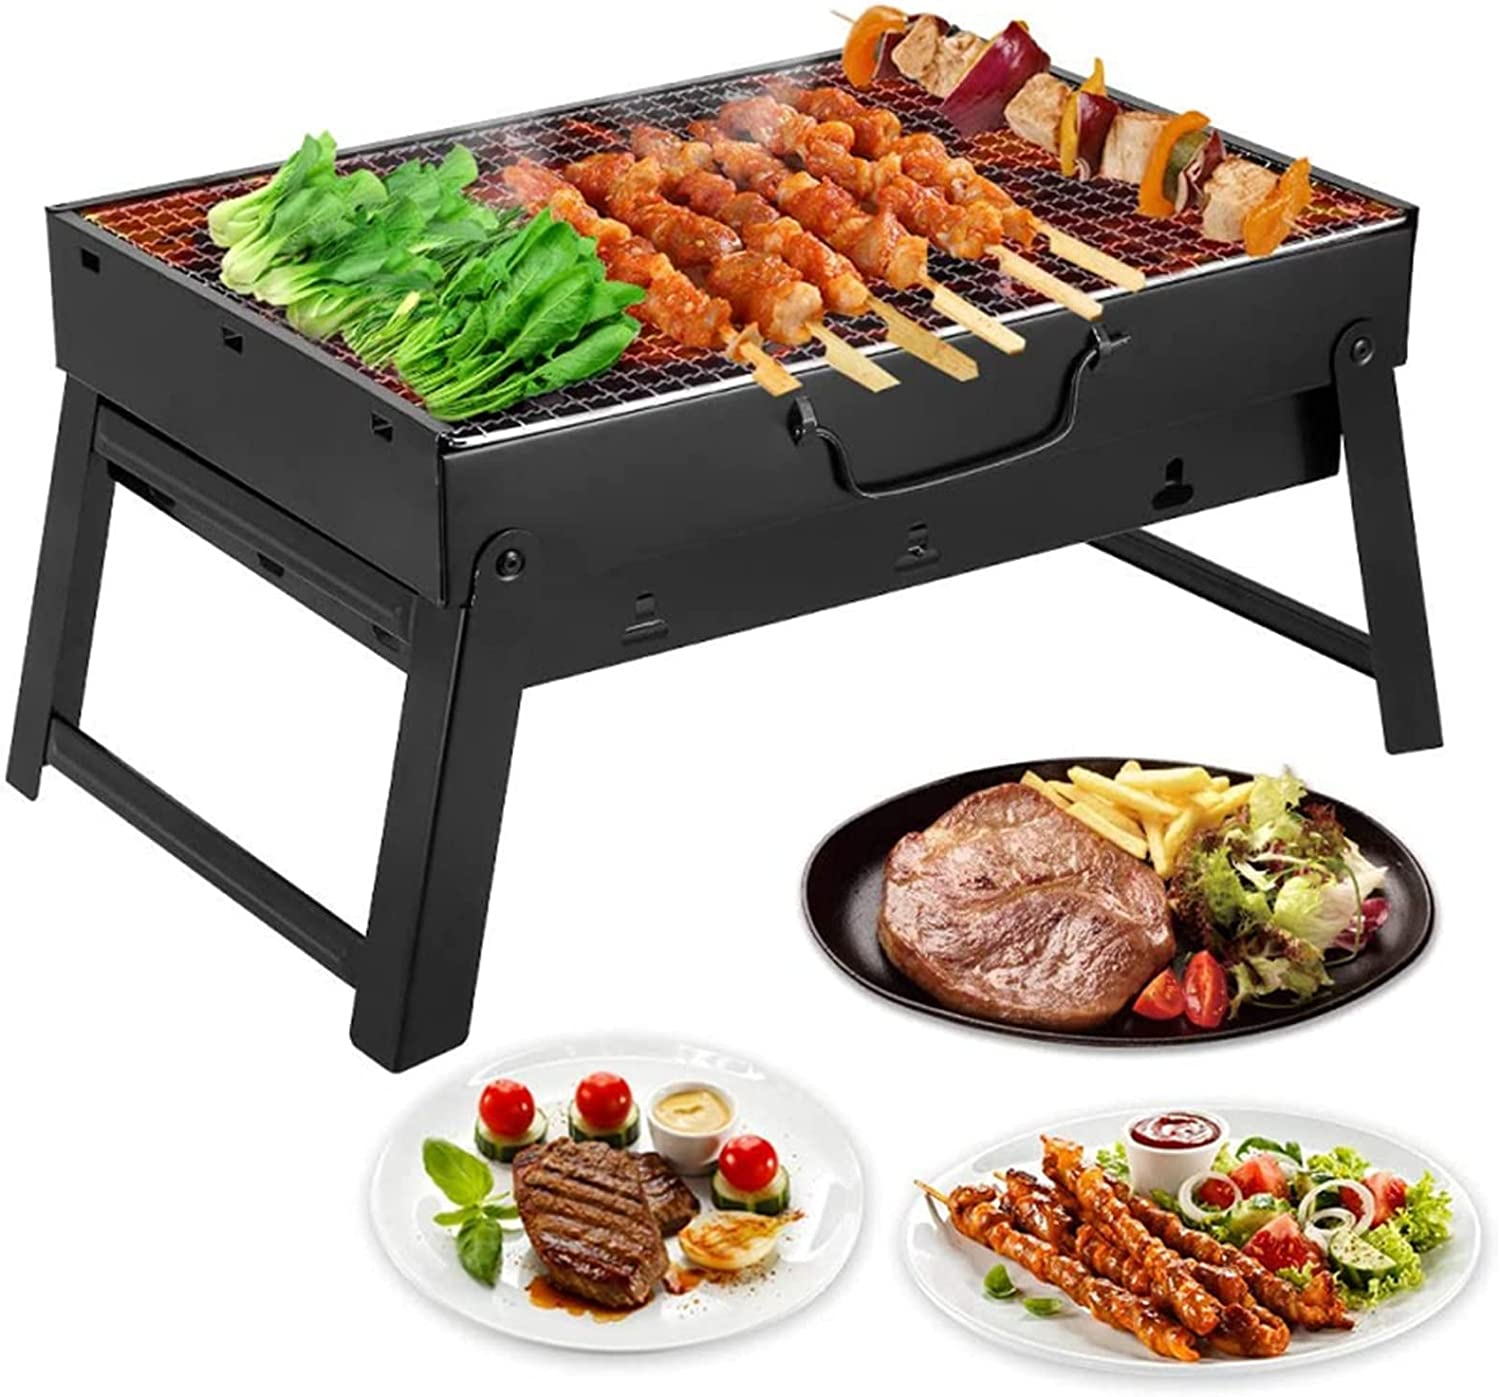 AGM Charcoal Grill Folding Lightweight Portable Long Beach Ranking TOP9 Mall Barbecue